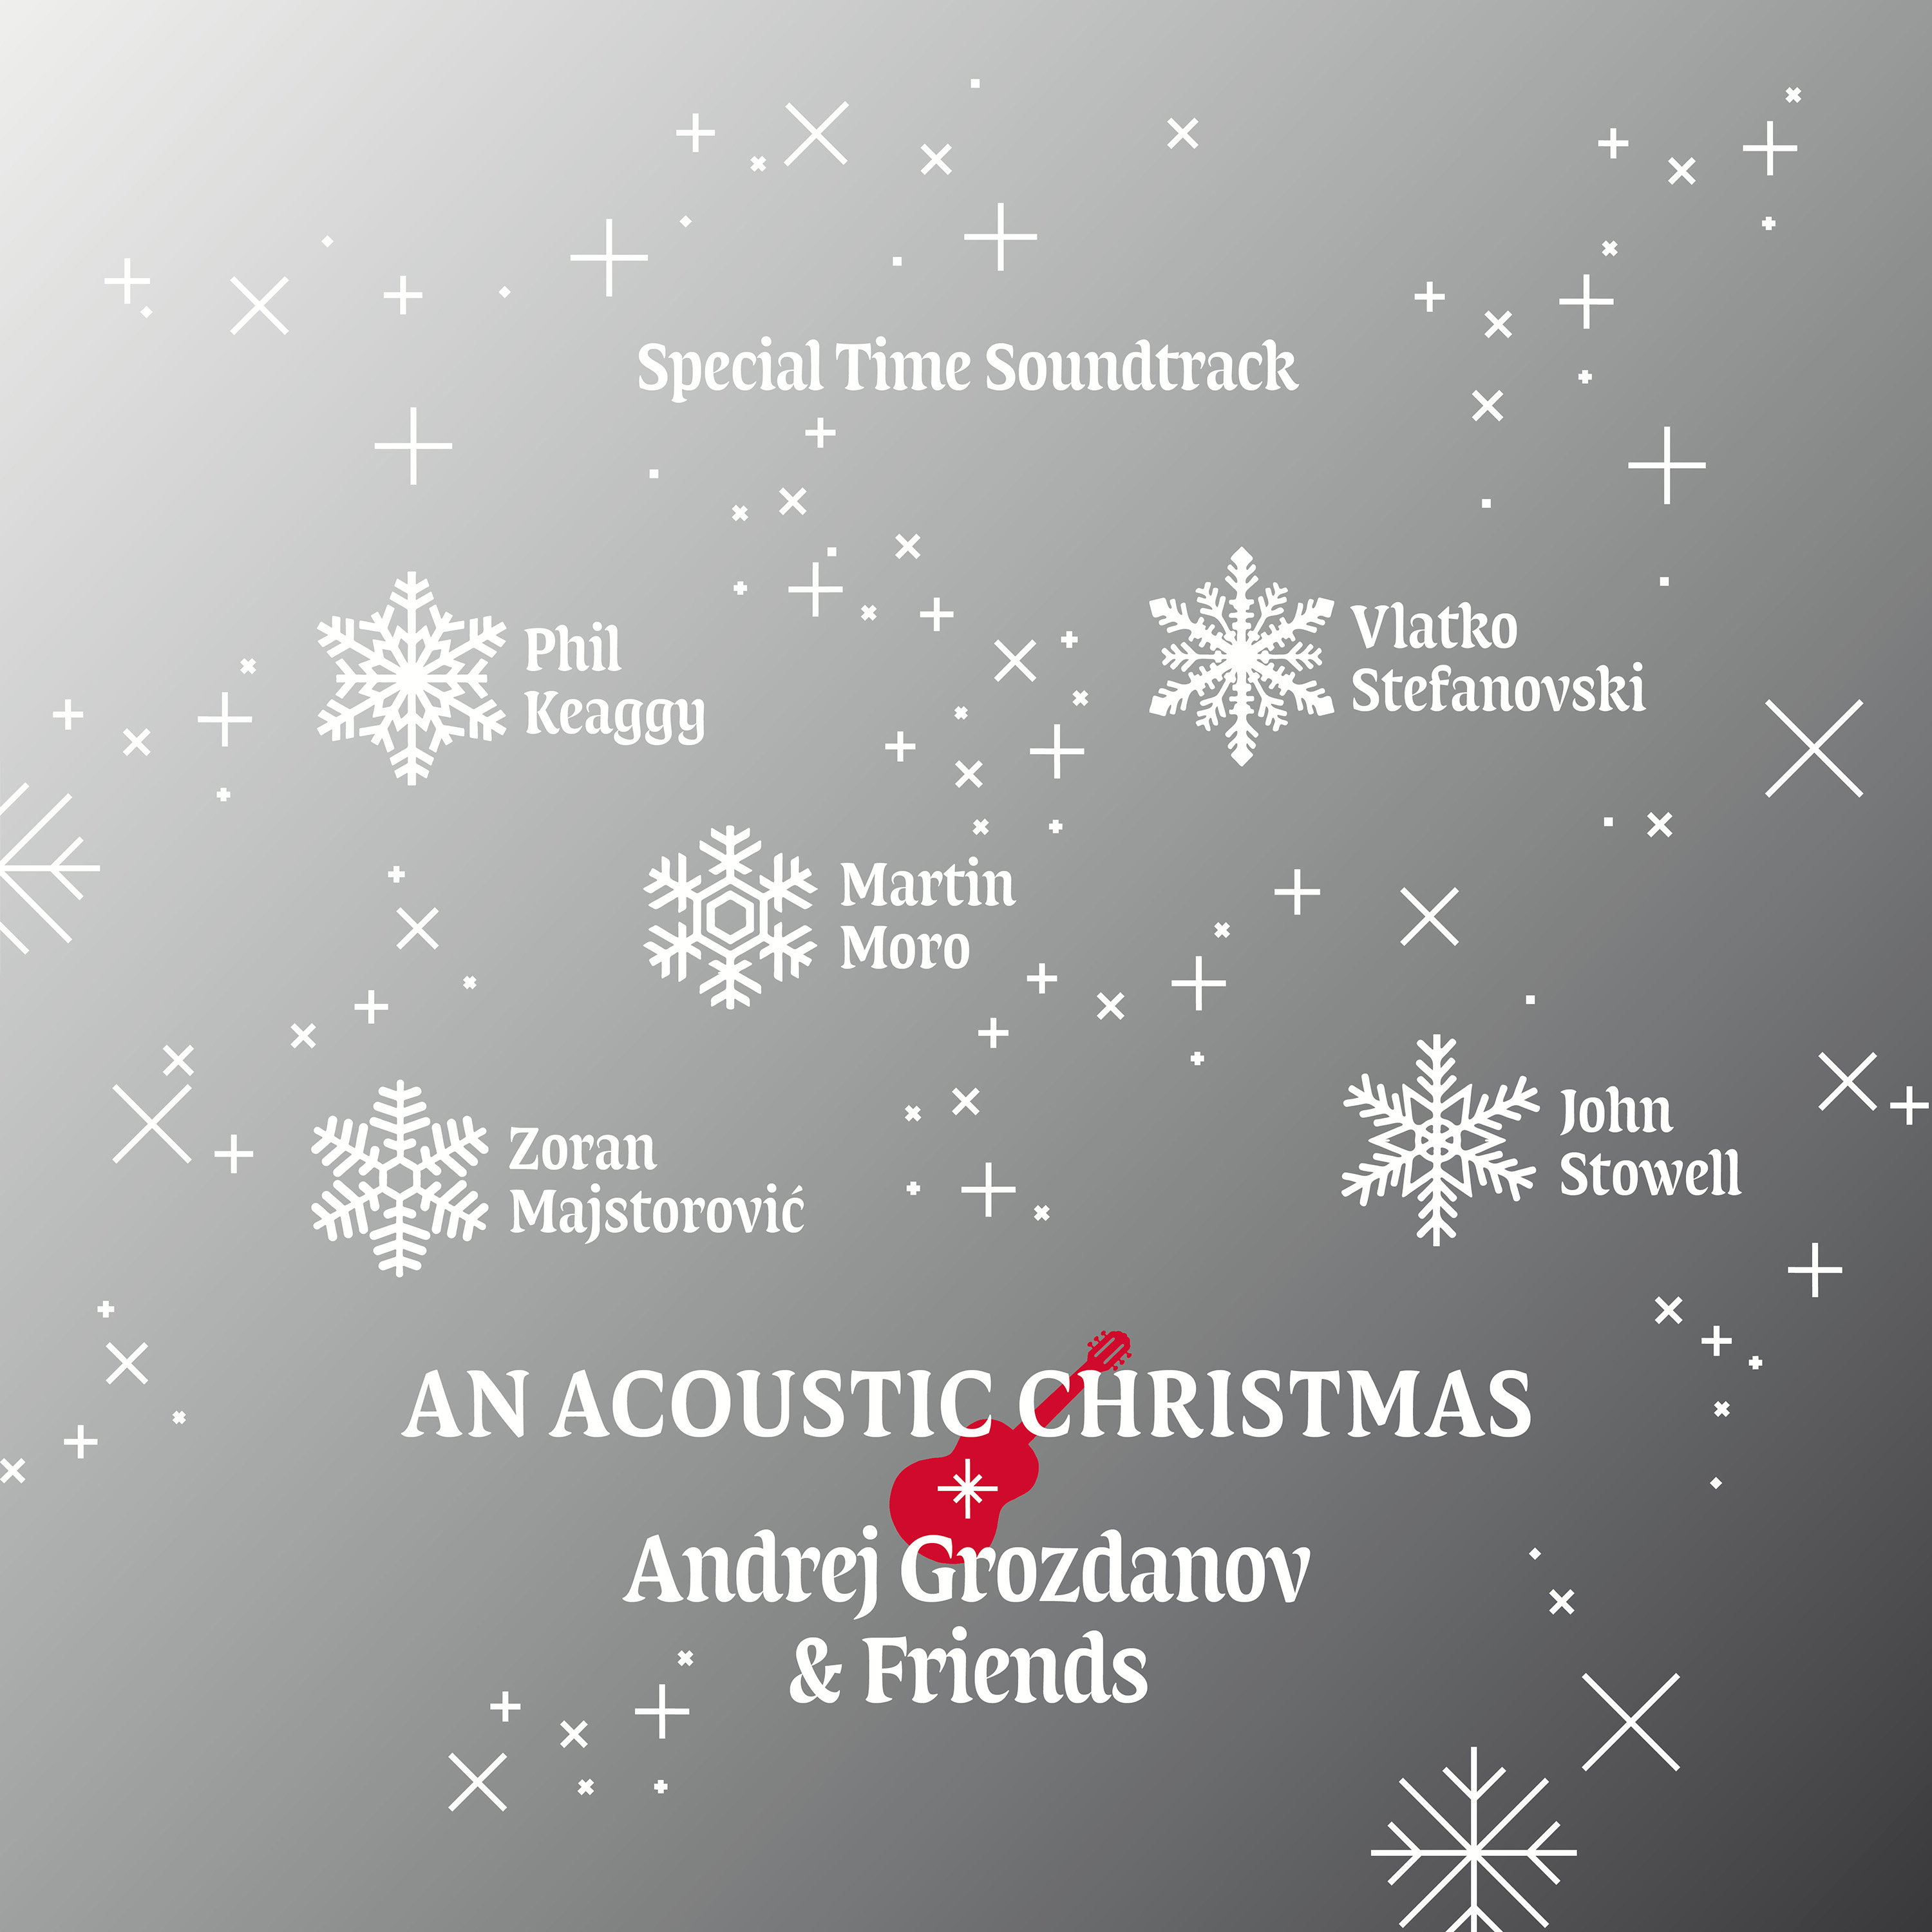 andrej_grozdanov_and_friends-cover-preview-itunes3.jpg